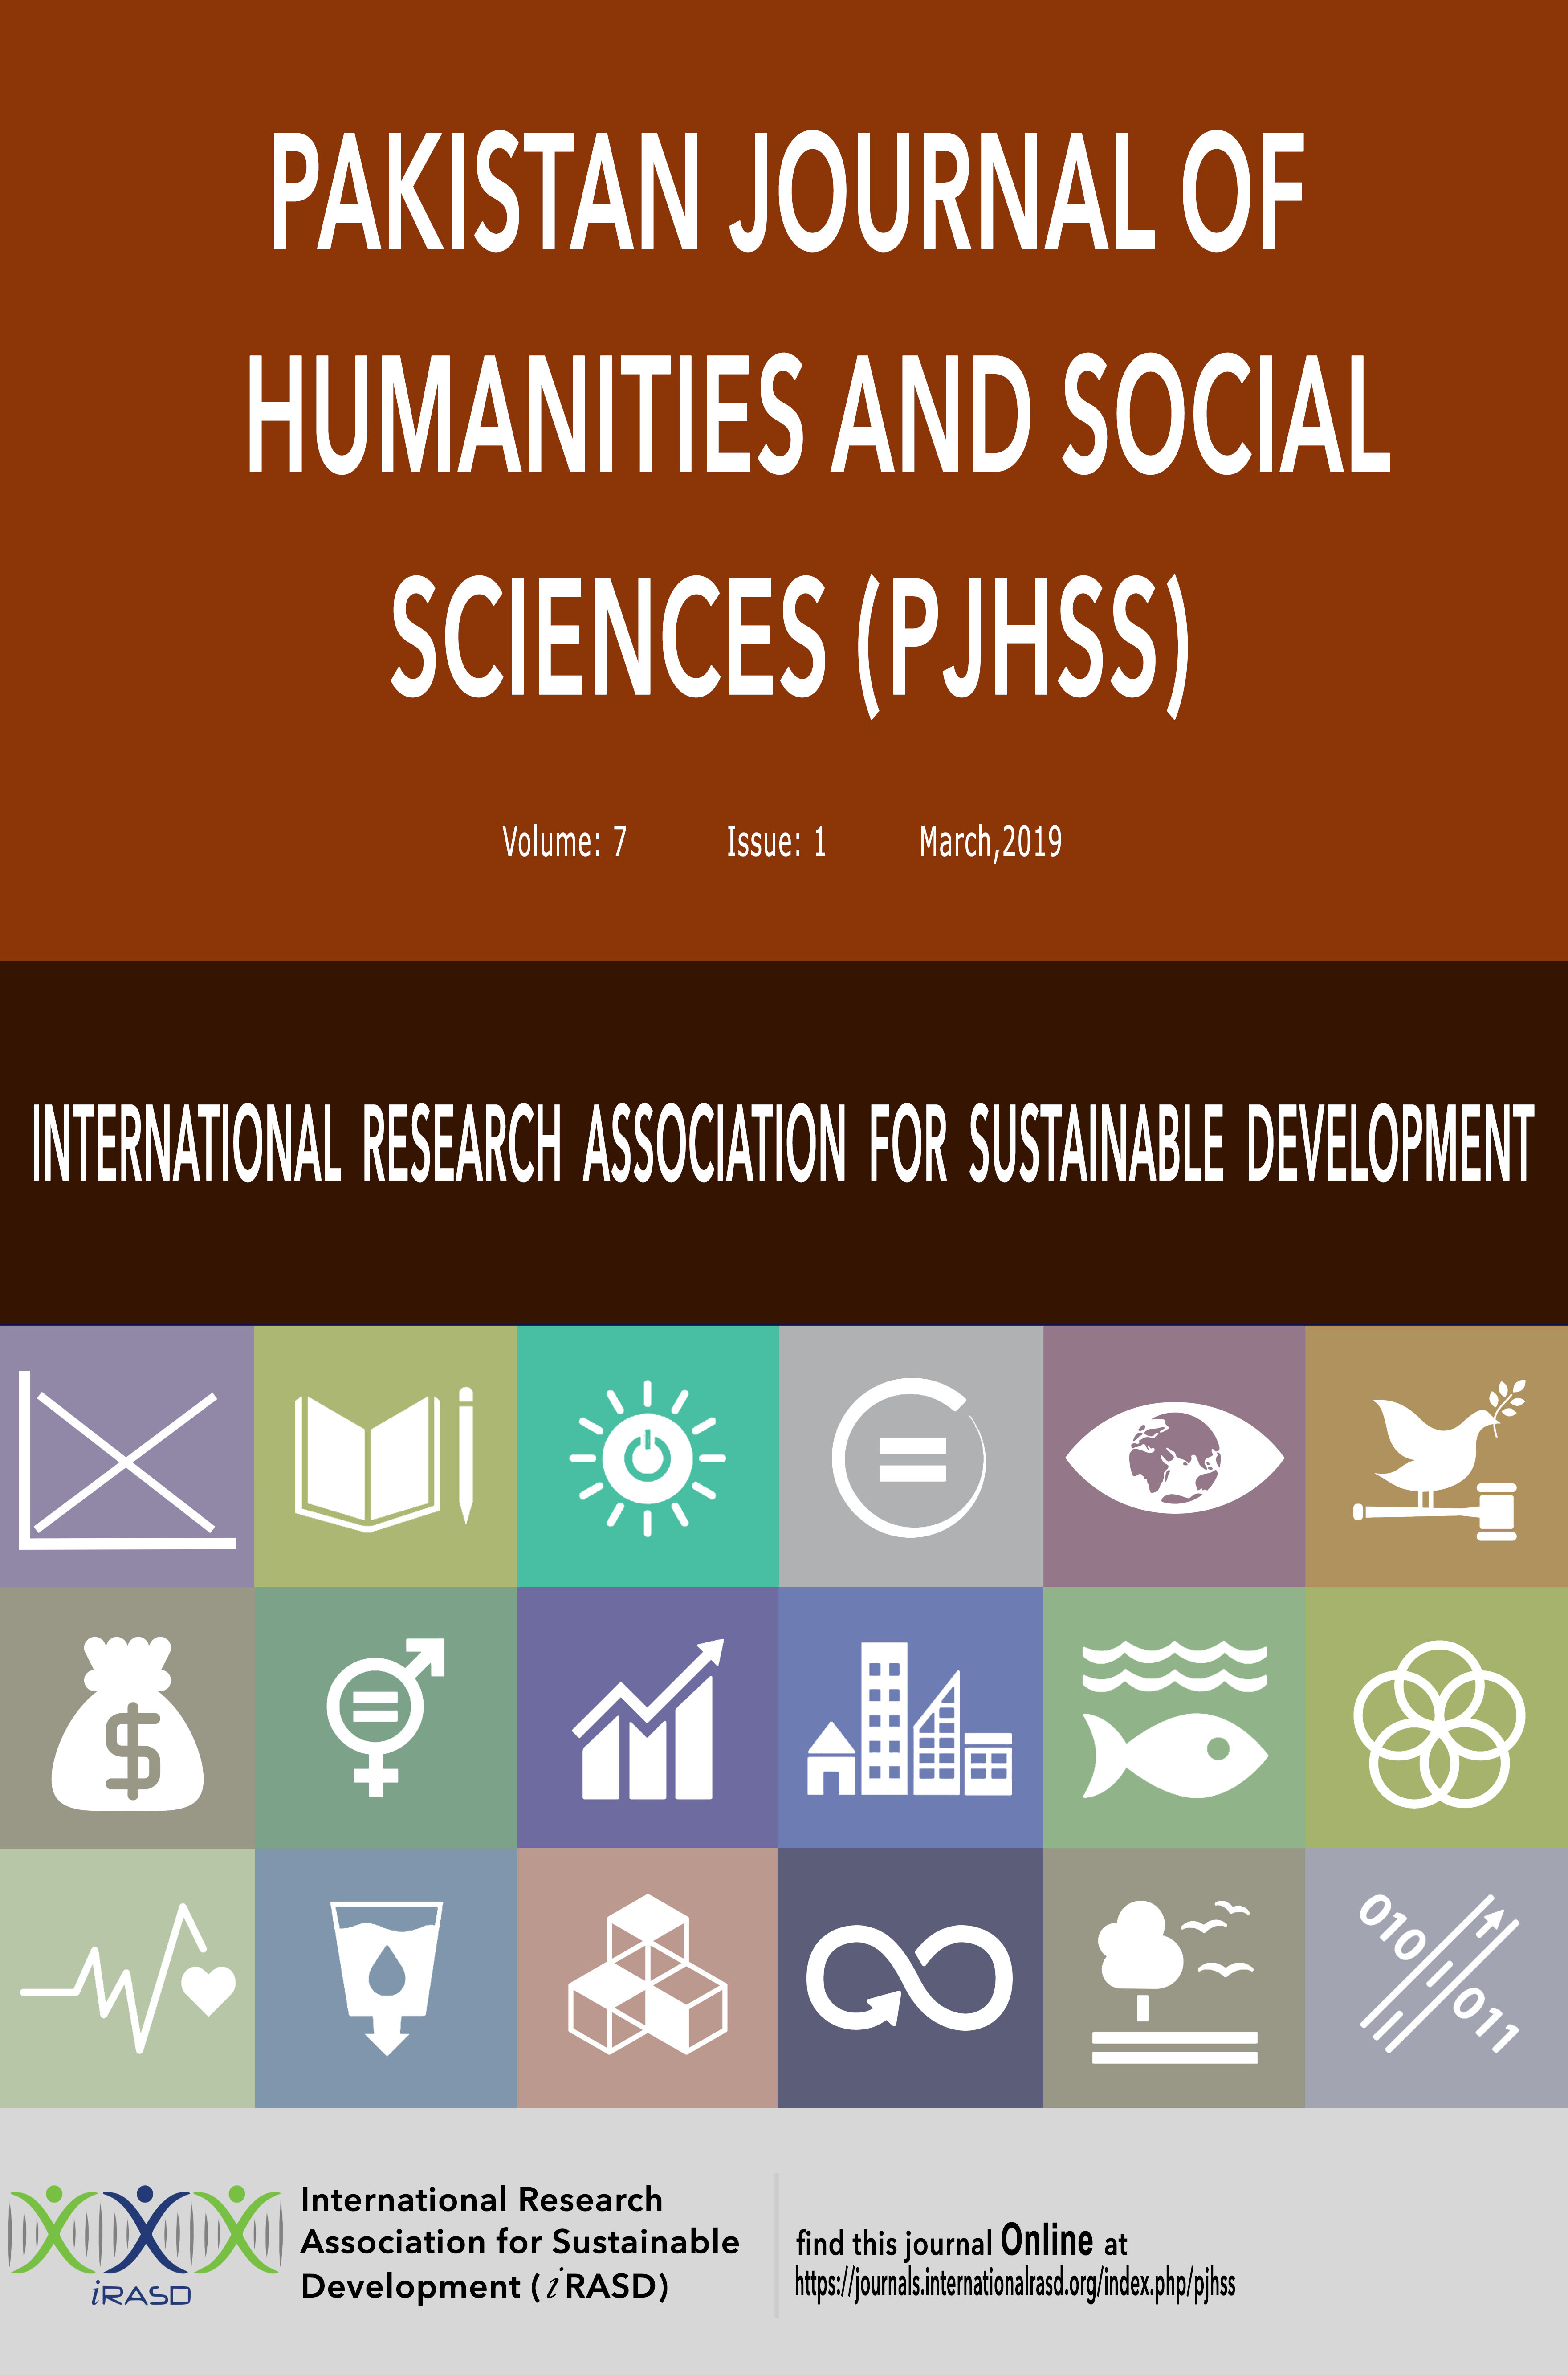 Pakistan Journal of Humanities and Social Sciences - PJHSS